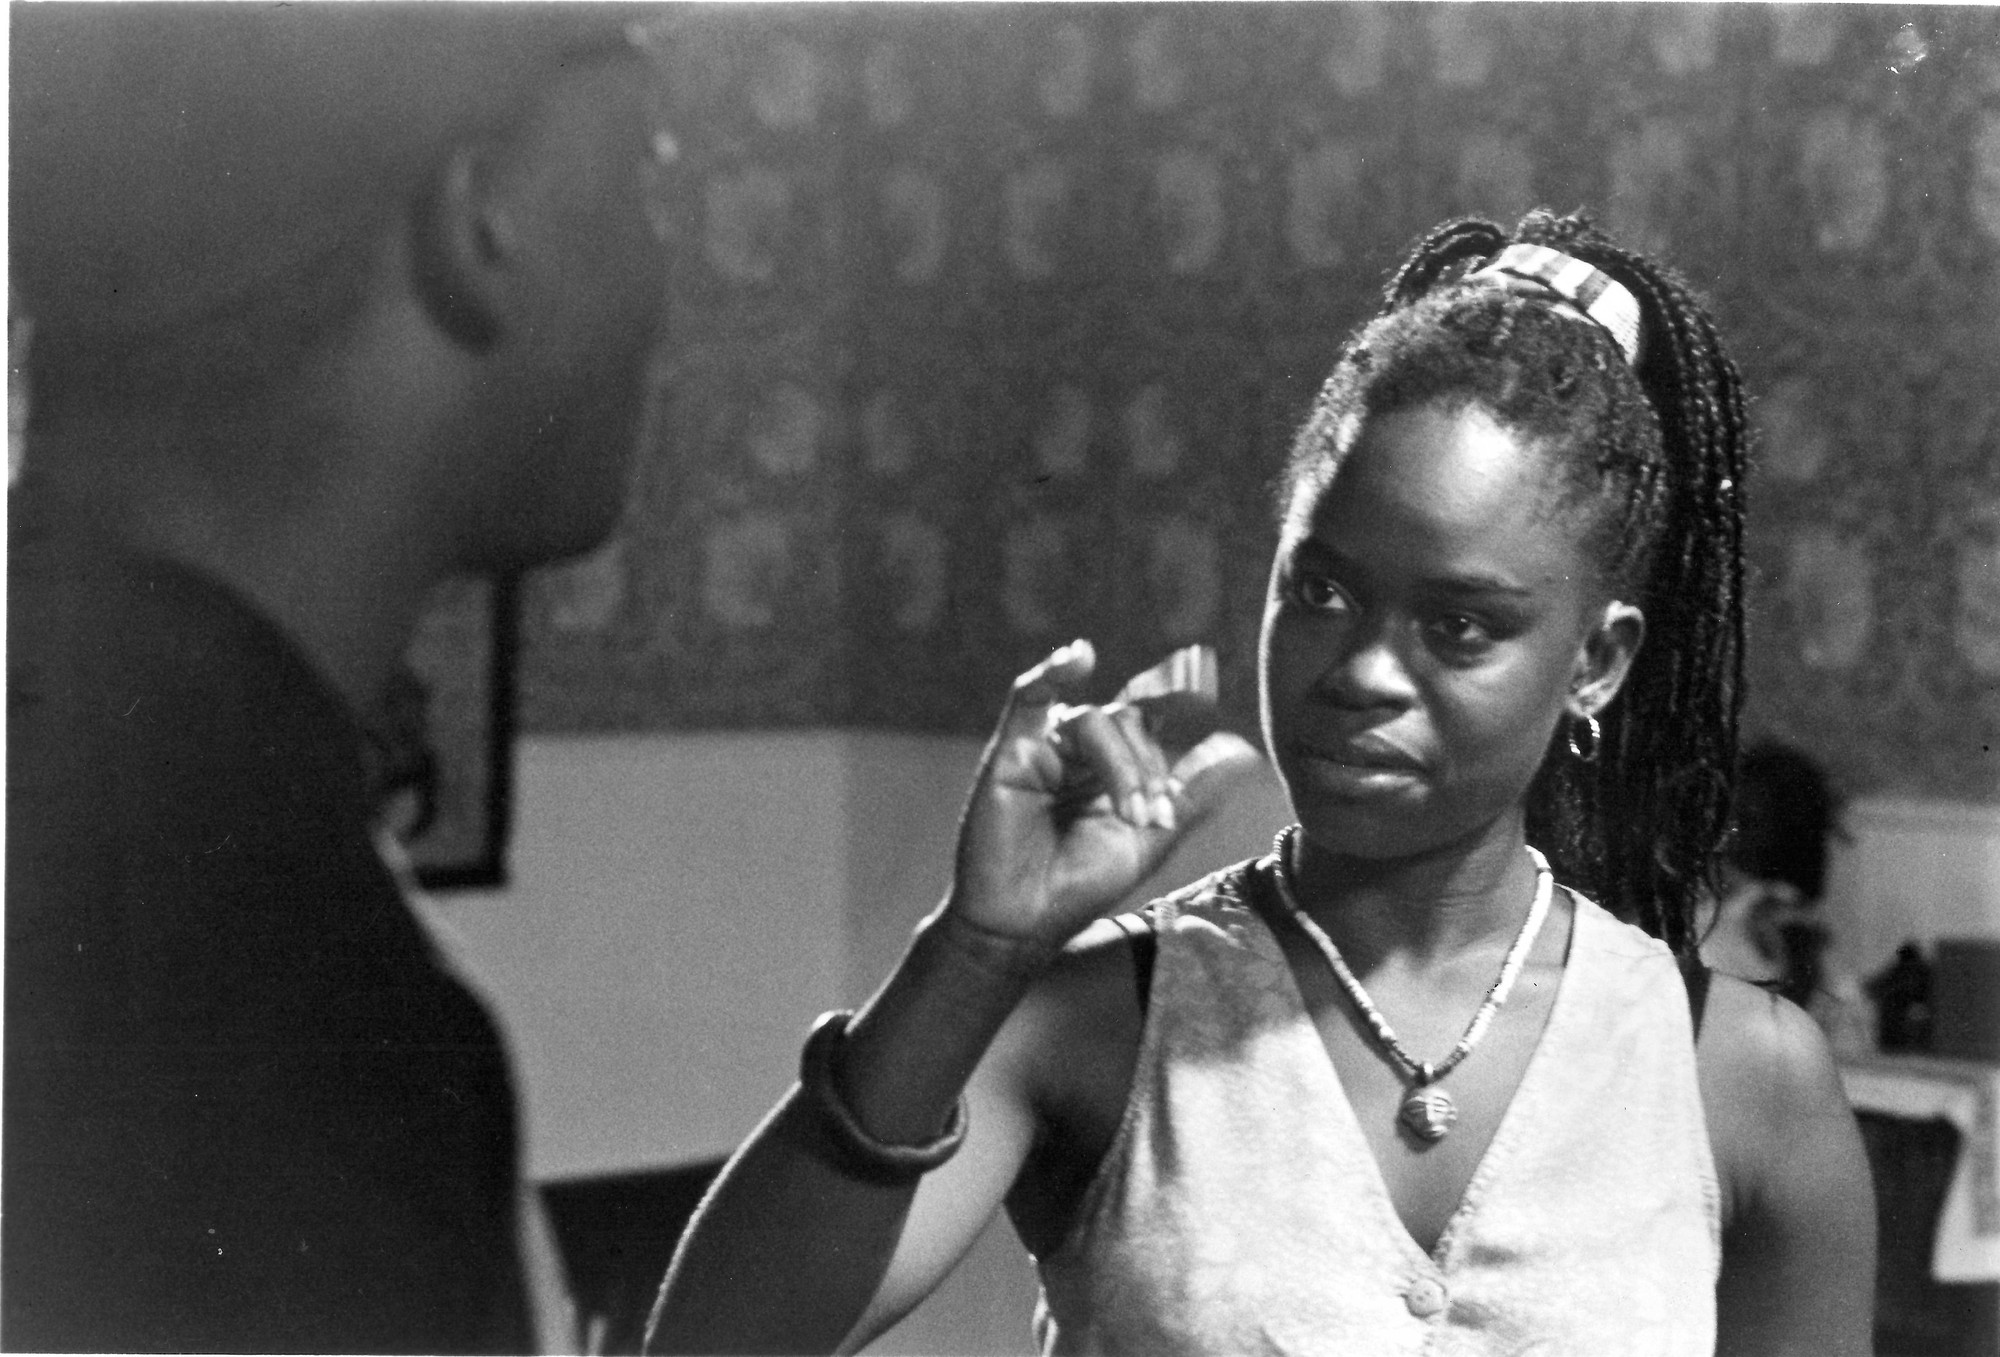 Compensation. 1999. USA. Directed by Zeinabu irene Davis. Courtesy of the filmmaker